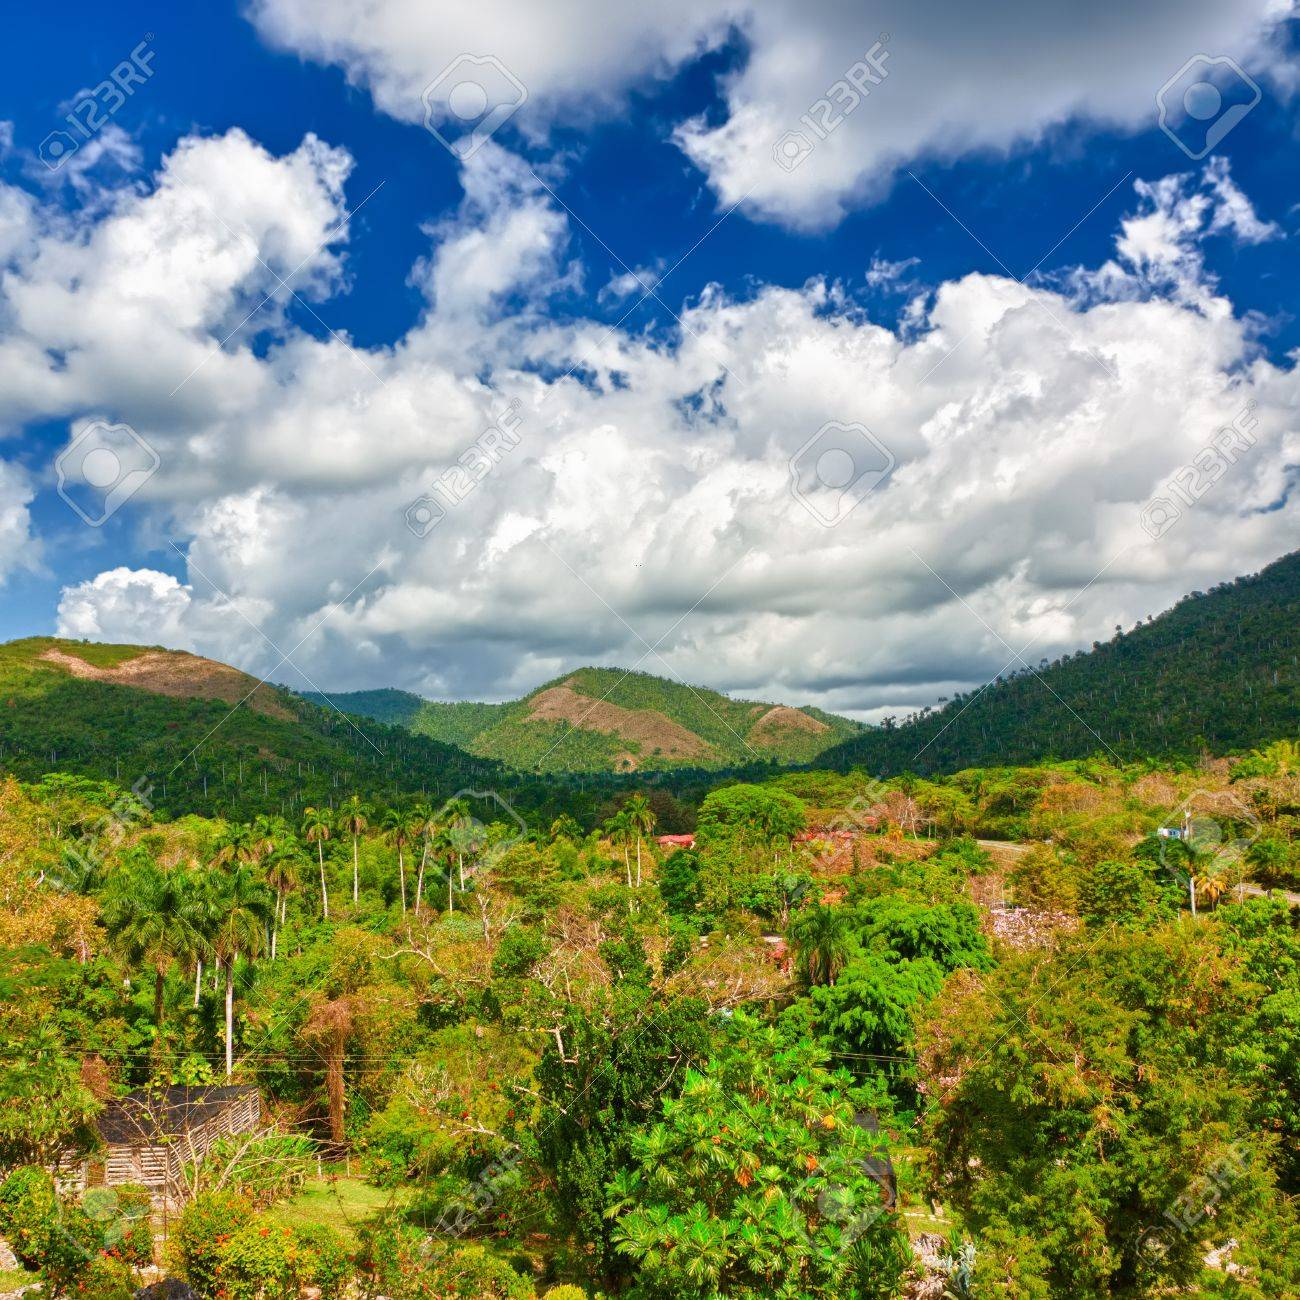 The mountains of Pinar del Rio in Cuba, a natural touristic attraction and a worlwide known tobacco growing area Stock Photo - 13126601